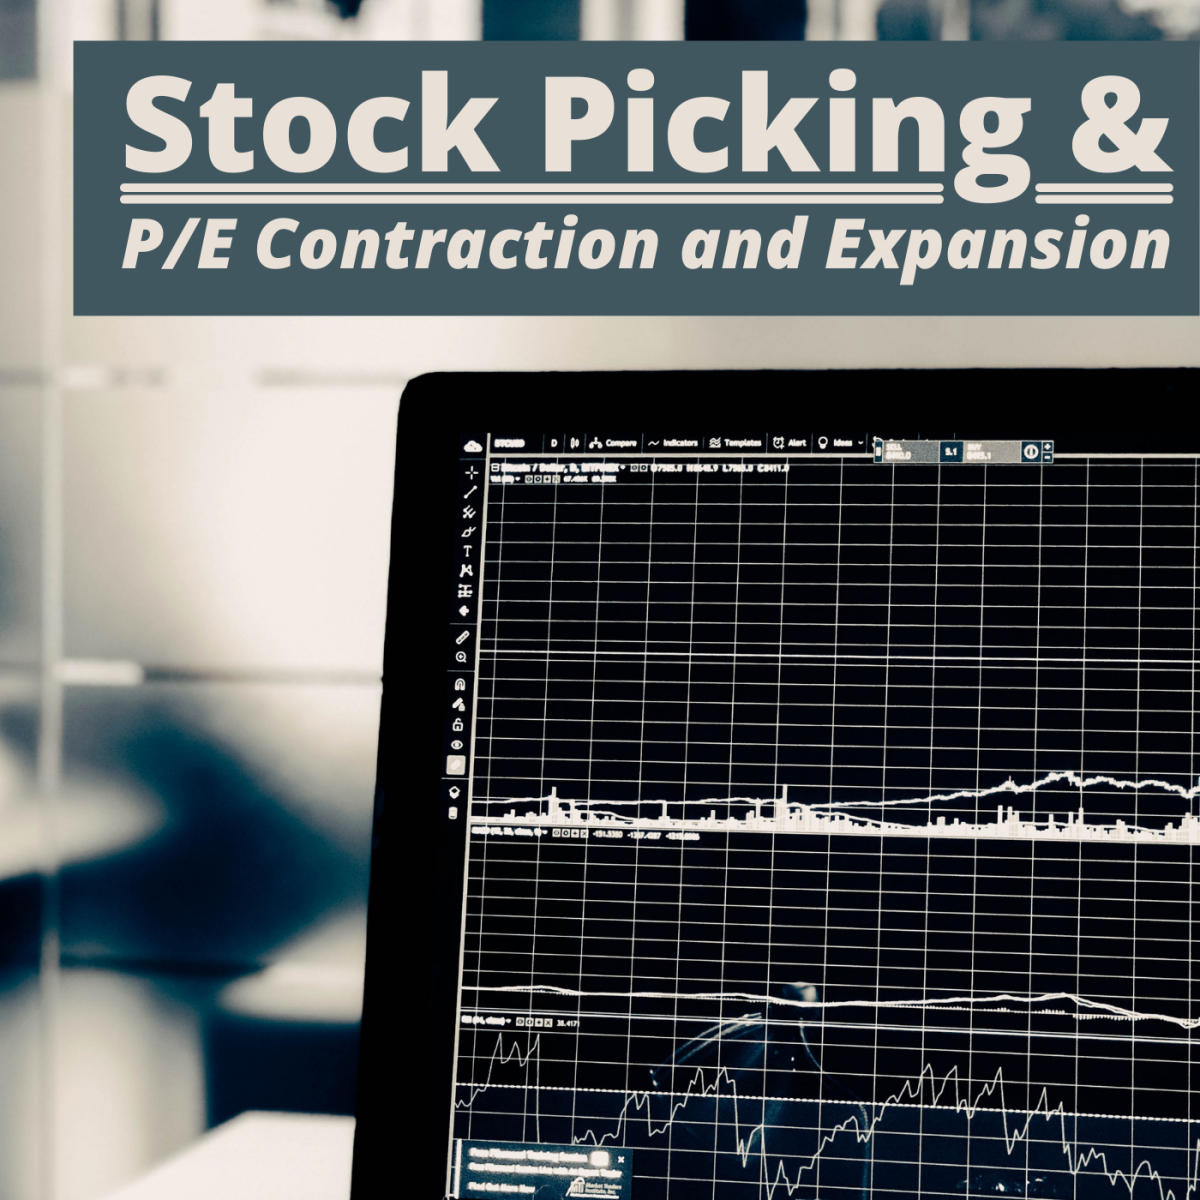 How can changing P/E values help you decide when to buy and sell?